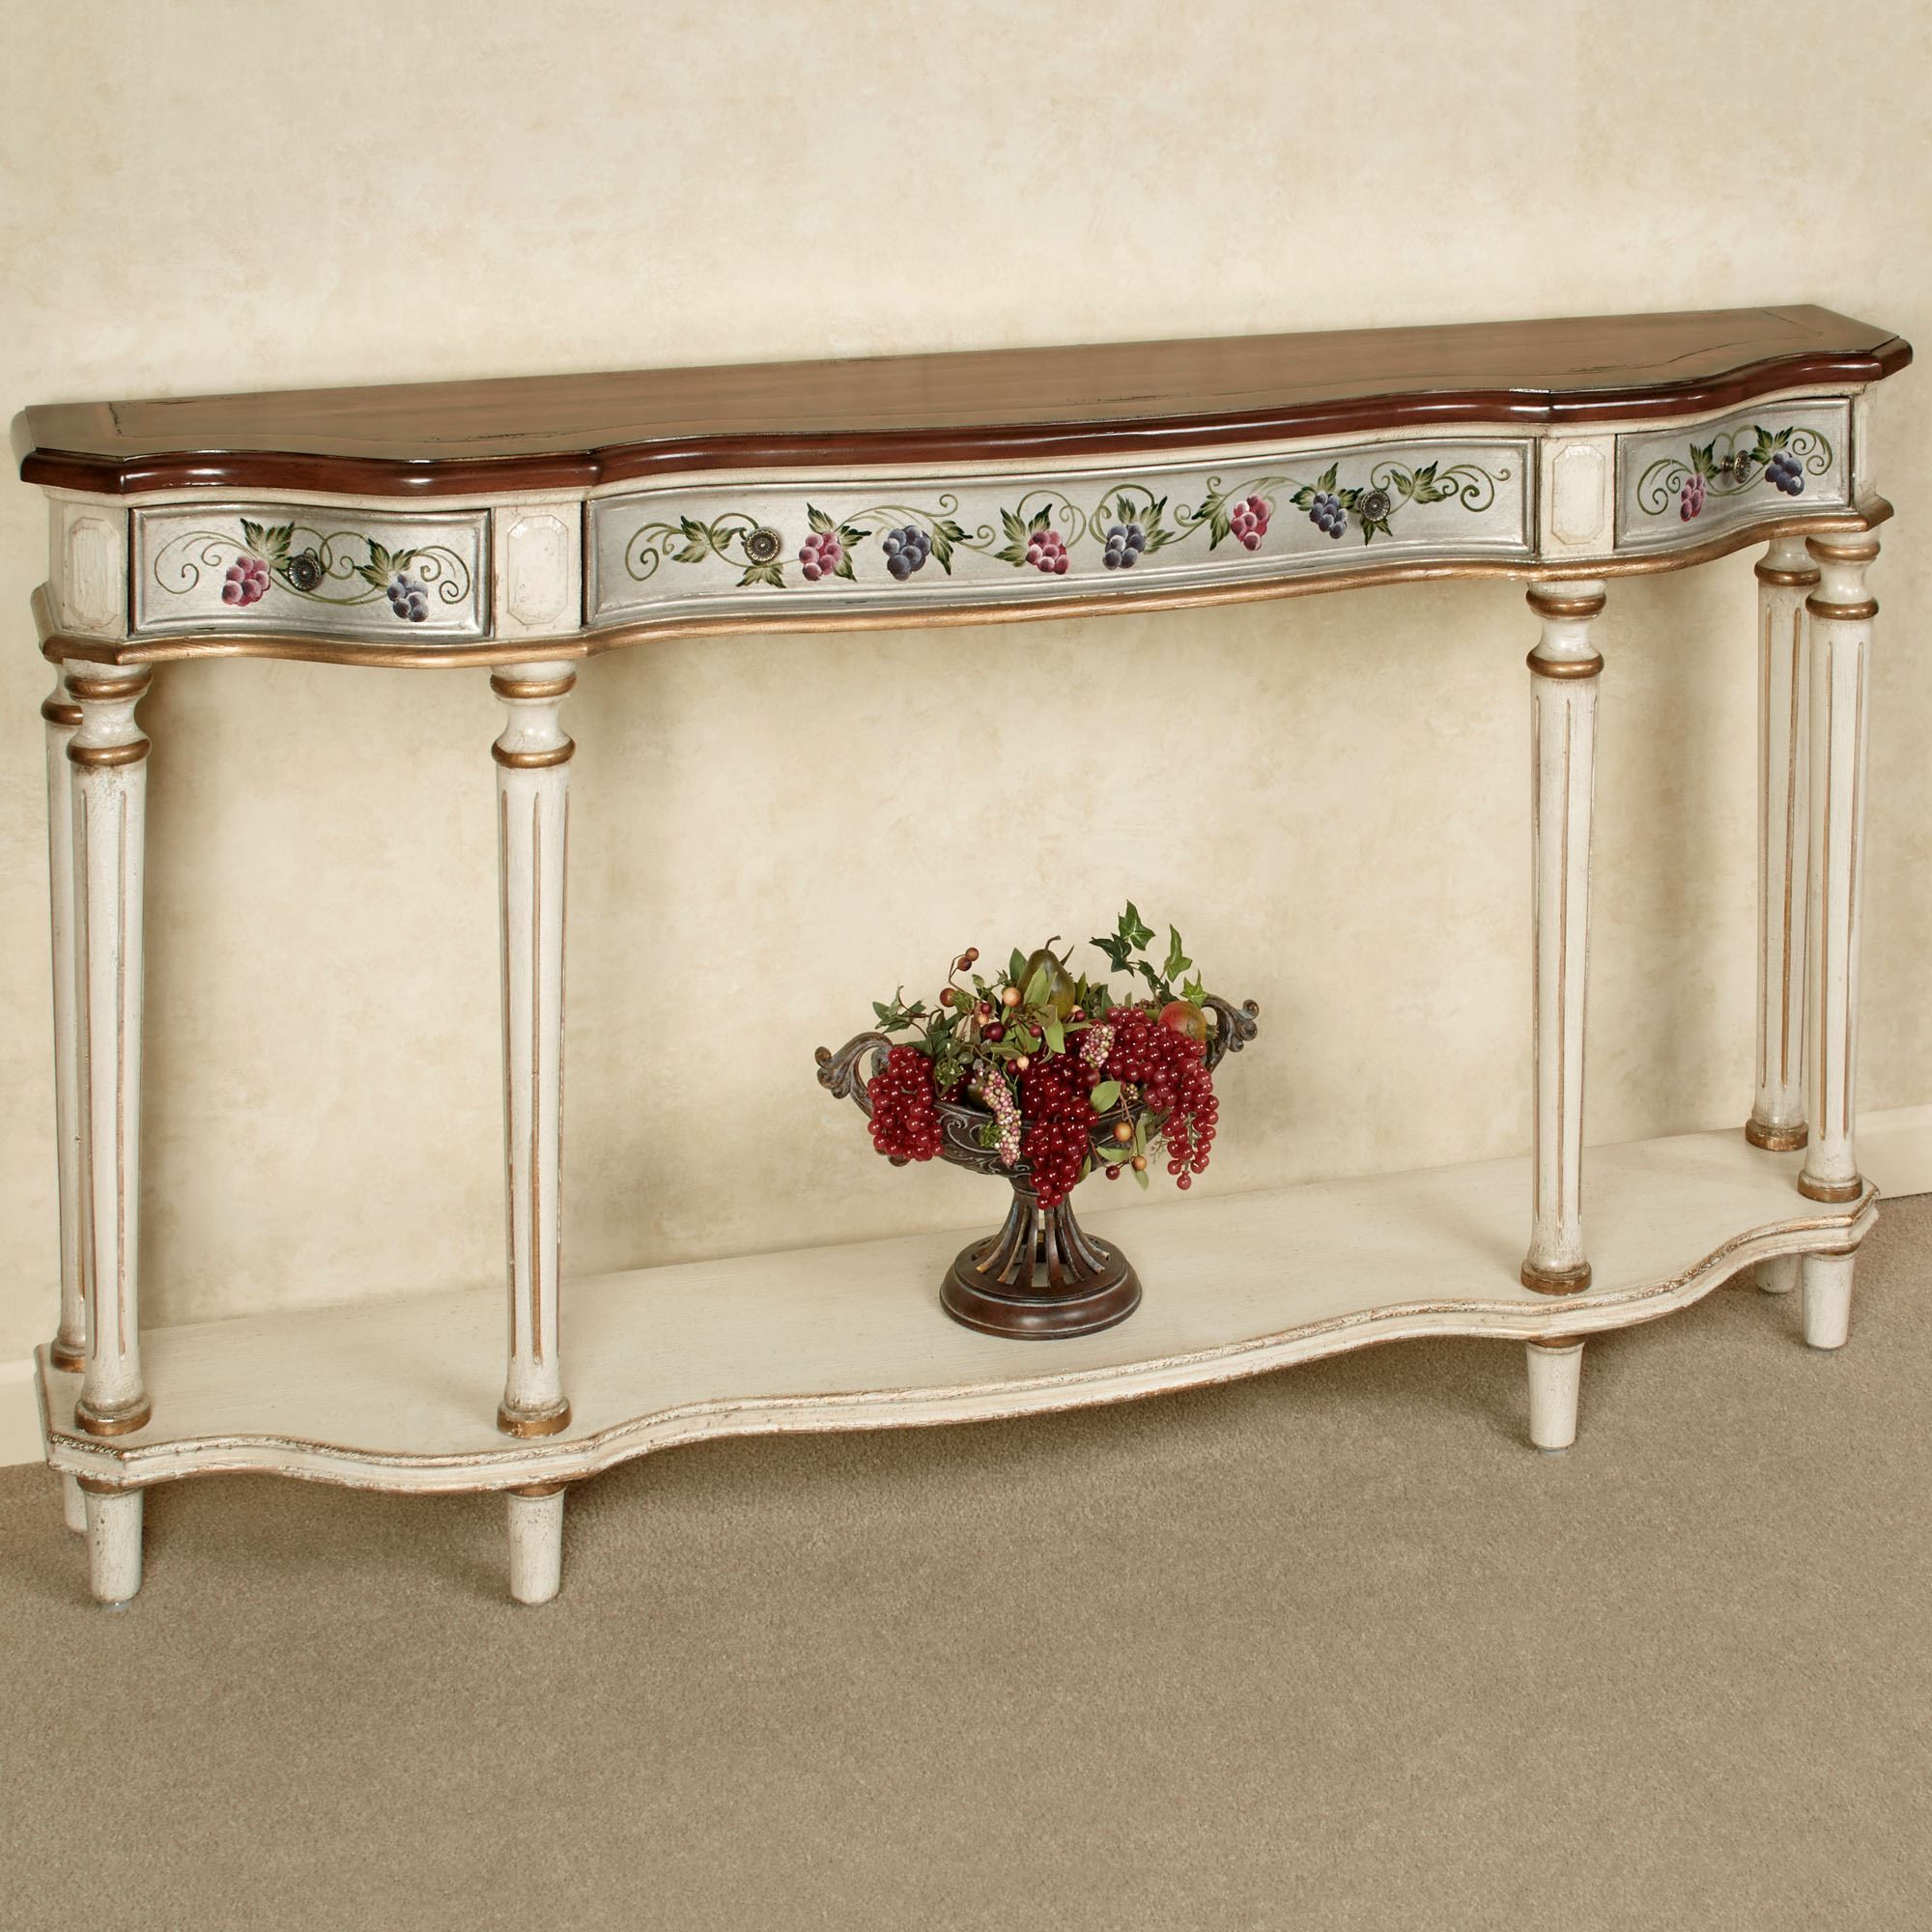 Merveilleux Uva Viti Italian Grapevine Wooden Buffet Table With Drawers Thumbnail Image